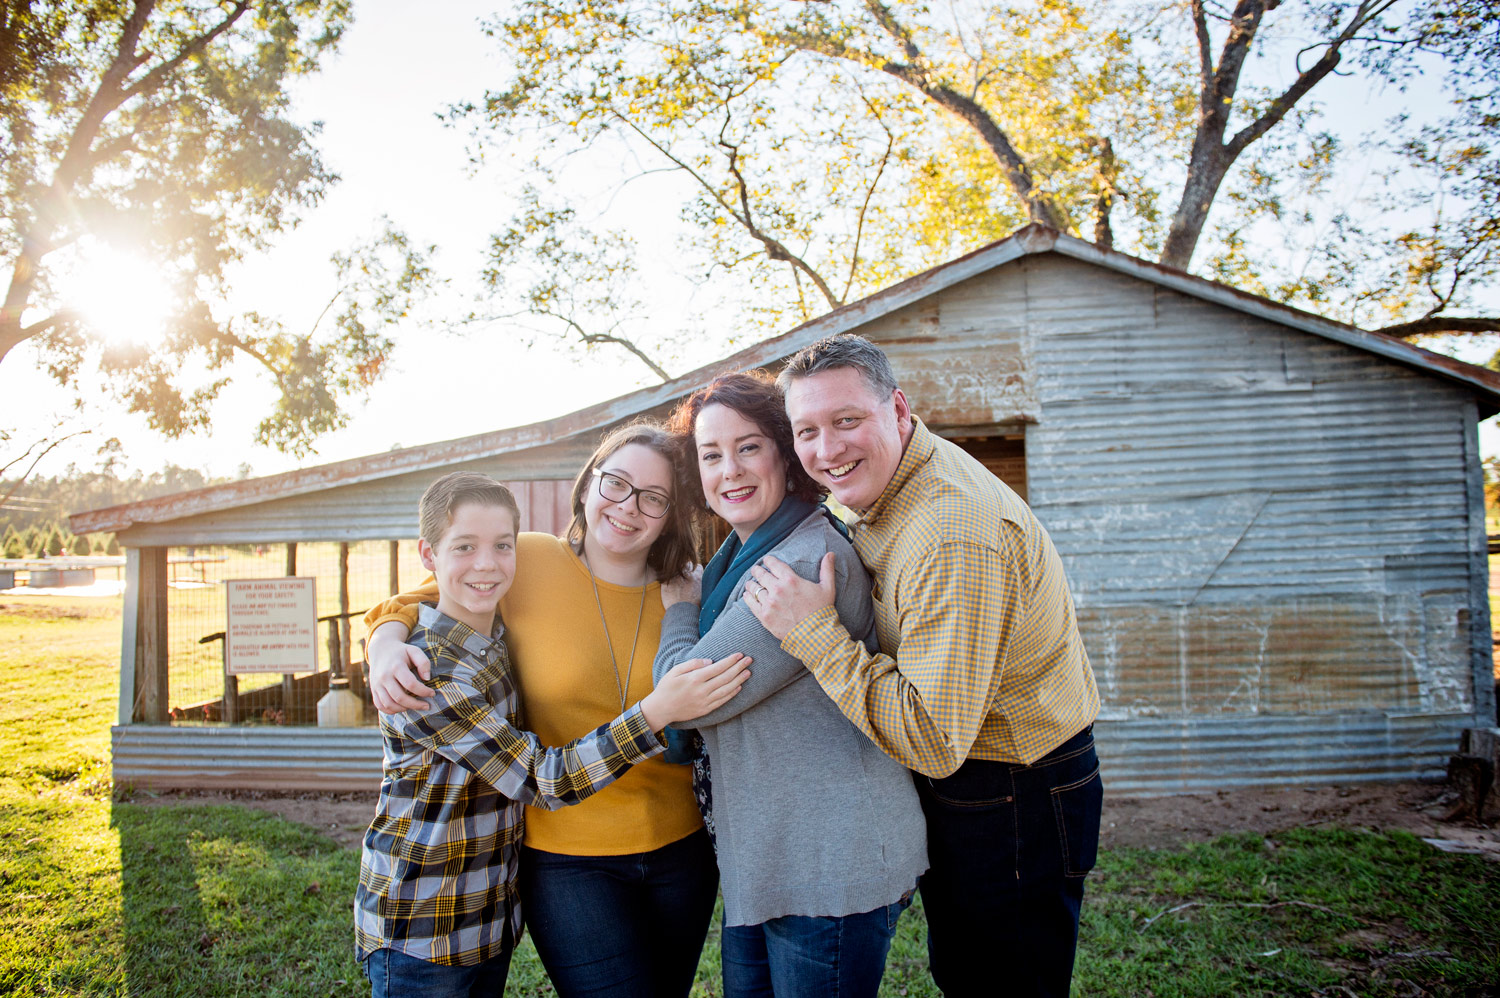 farm-family-photography-houston-texas.jpg